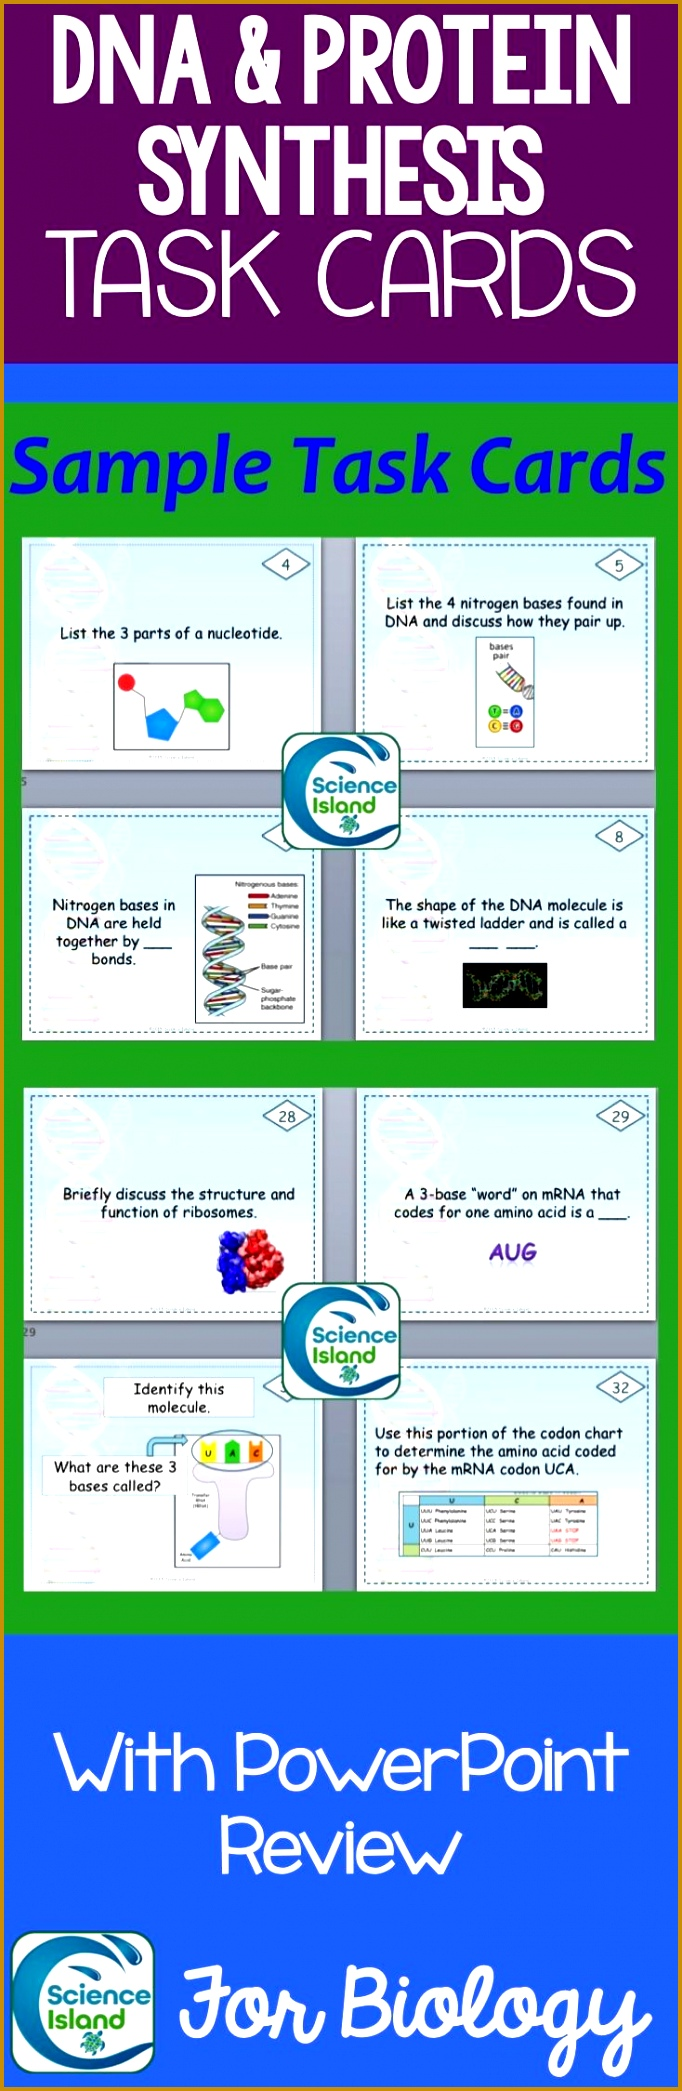 DNA and Protein Synthesis Task Cards with PowerPoint Review 2091682